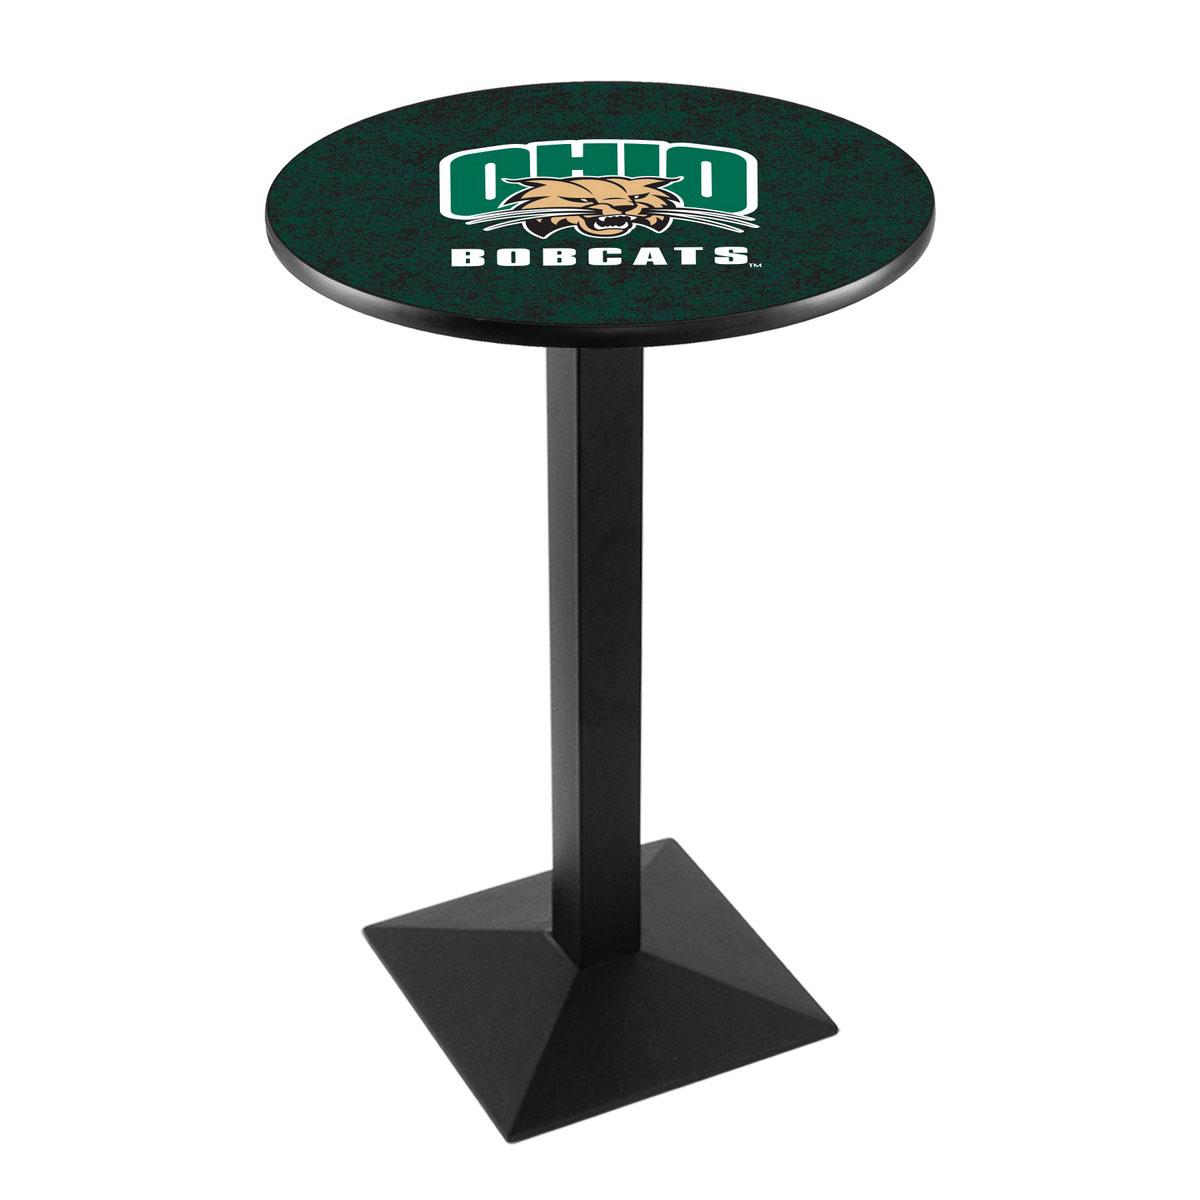 Serious Ohio University Logo Pub Bar Table Square Stand Product Photo